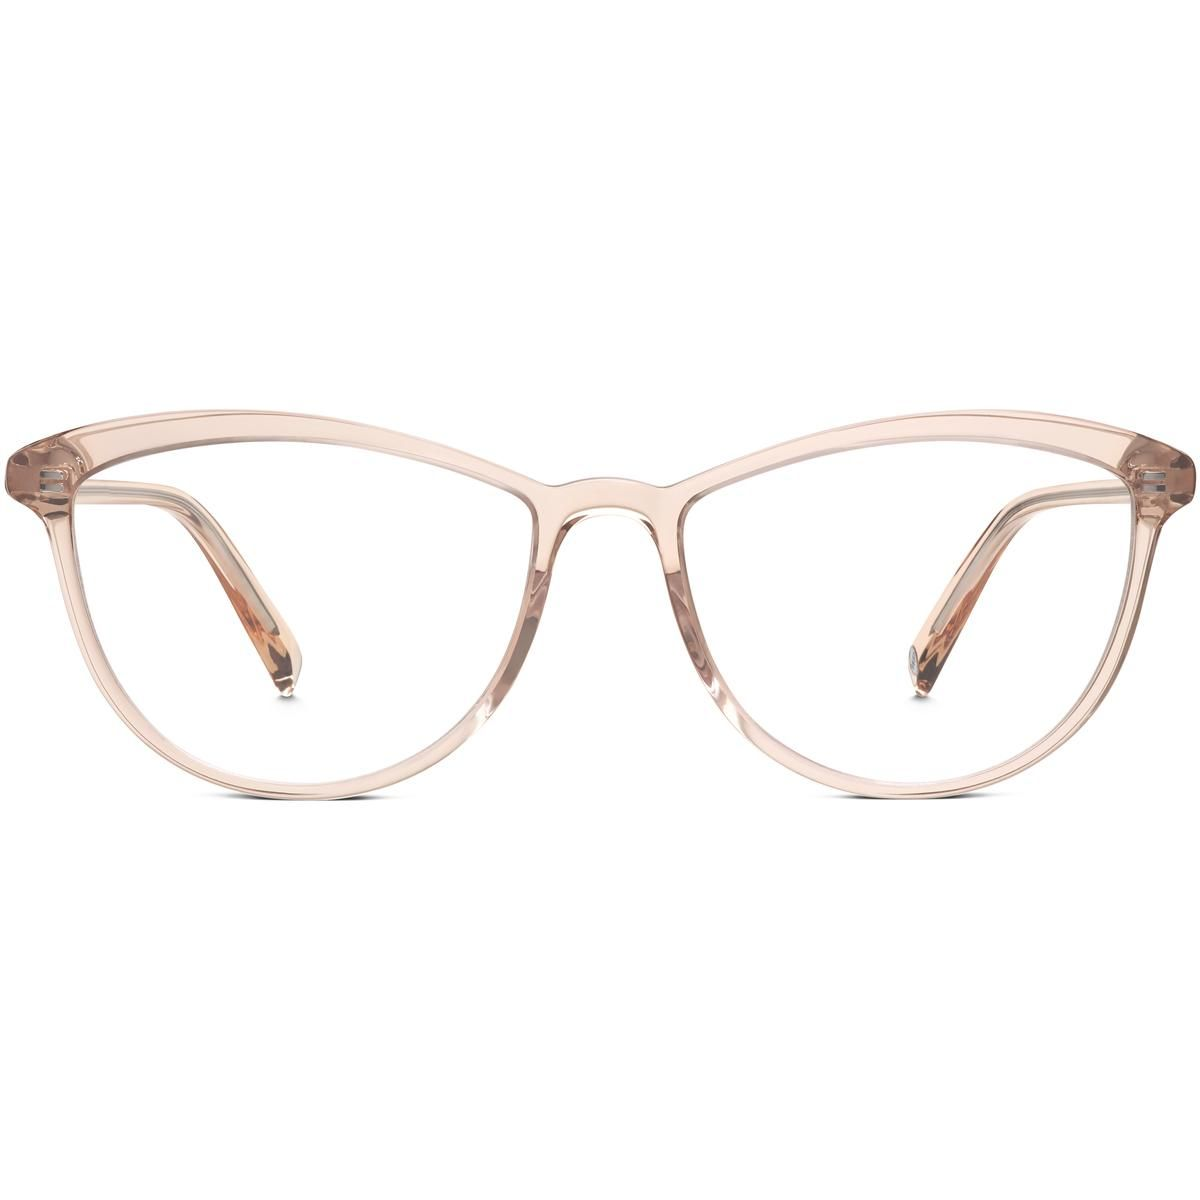 Louise Lbf Eyeglasses In Rose Water For Women Eyeglasses For